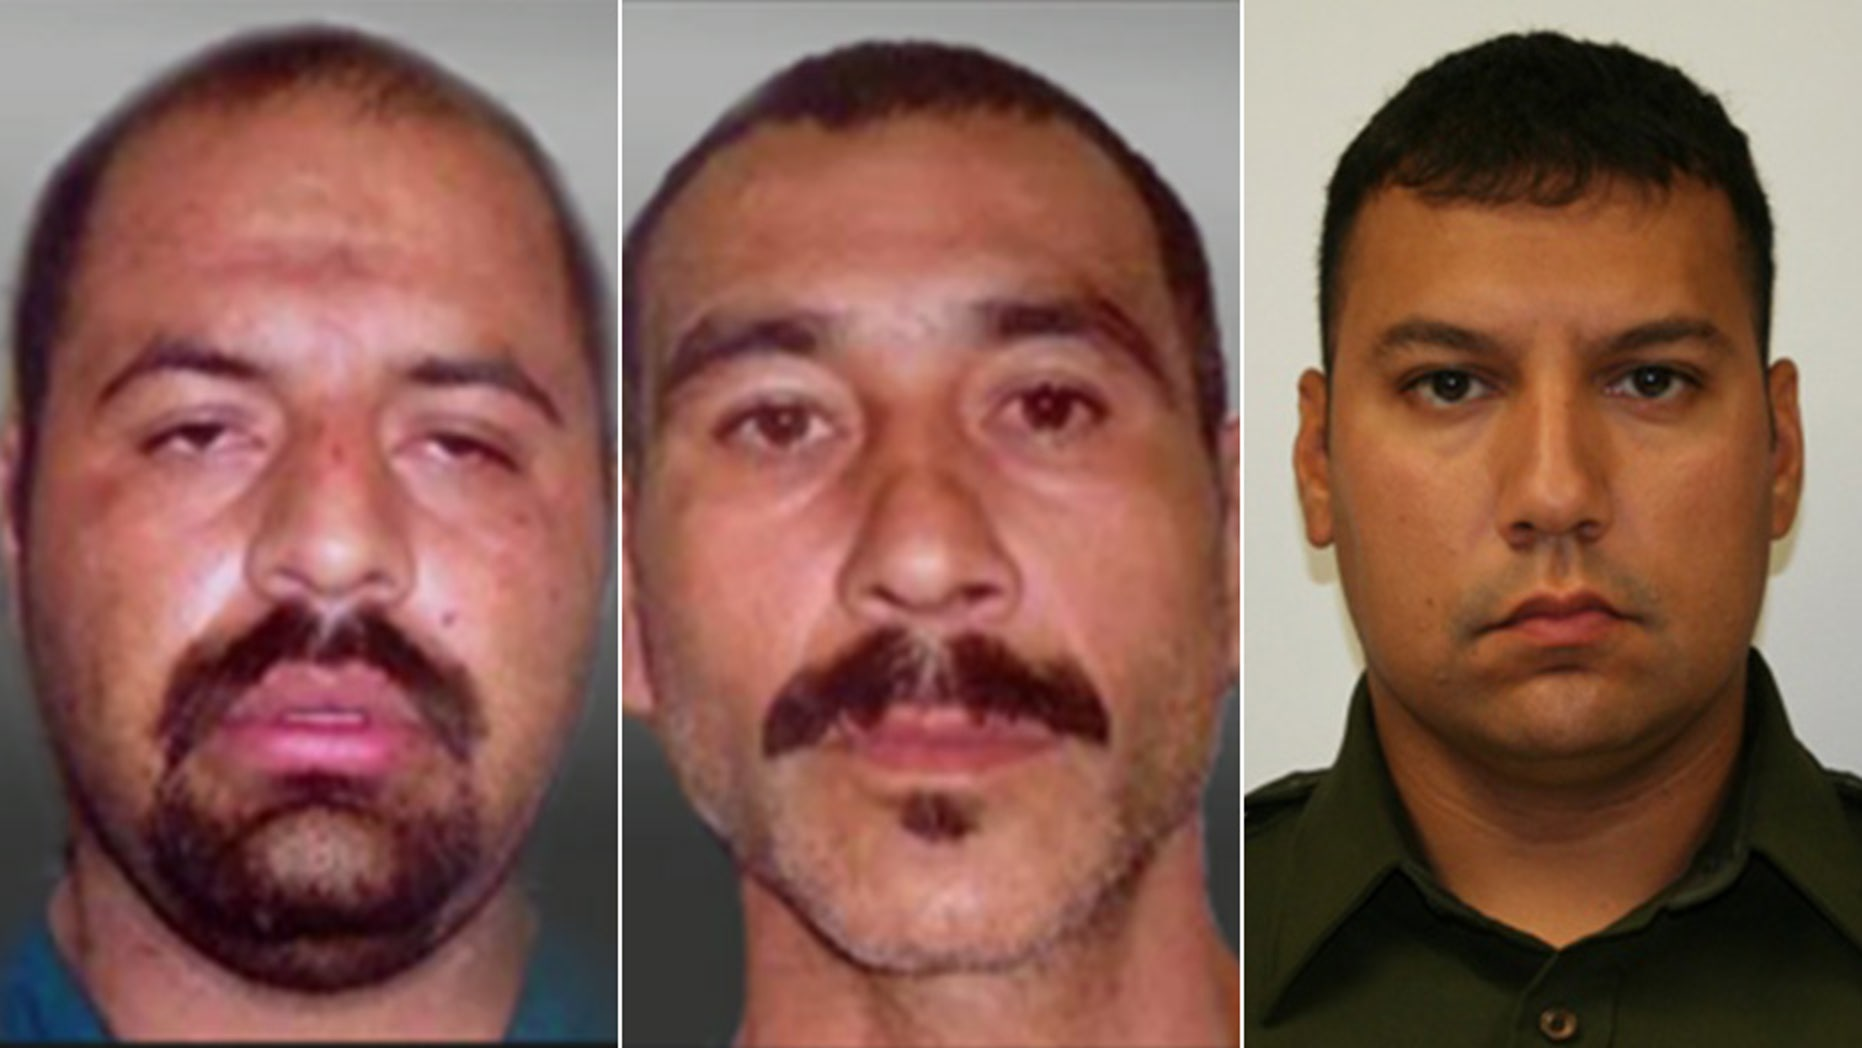 Gustavo Tijerina-Sandoval, left, has been found guilty in the 2014 murder of Border Patrol Agent Javier Vega Jr. His accomplice, Ismael Hernandez-Vallejo, center, has yet to go to trial on the same charges.